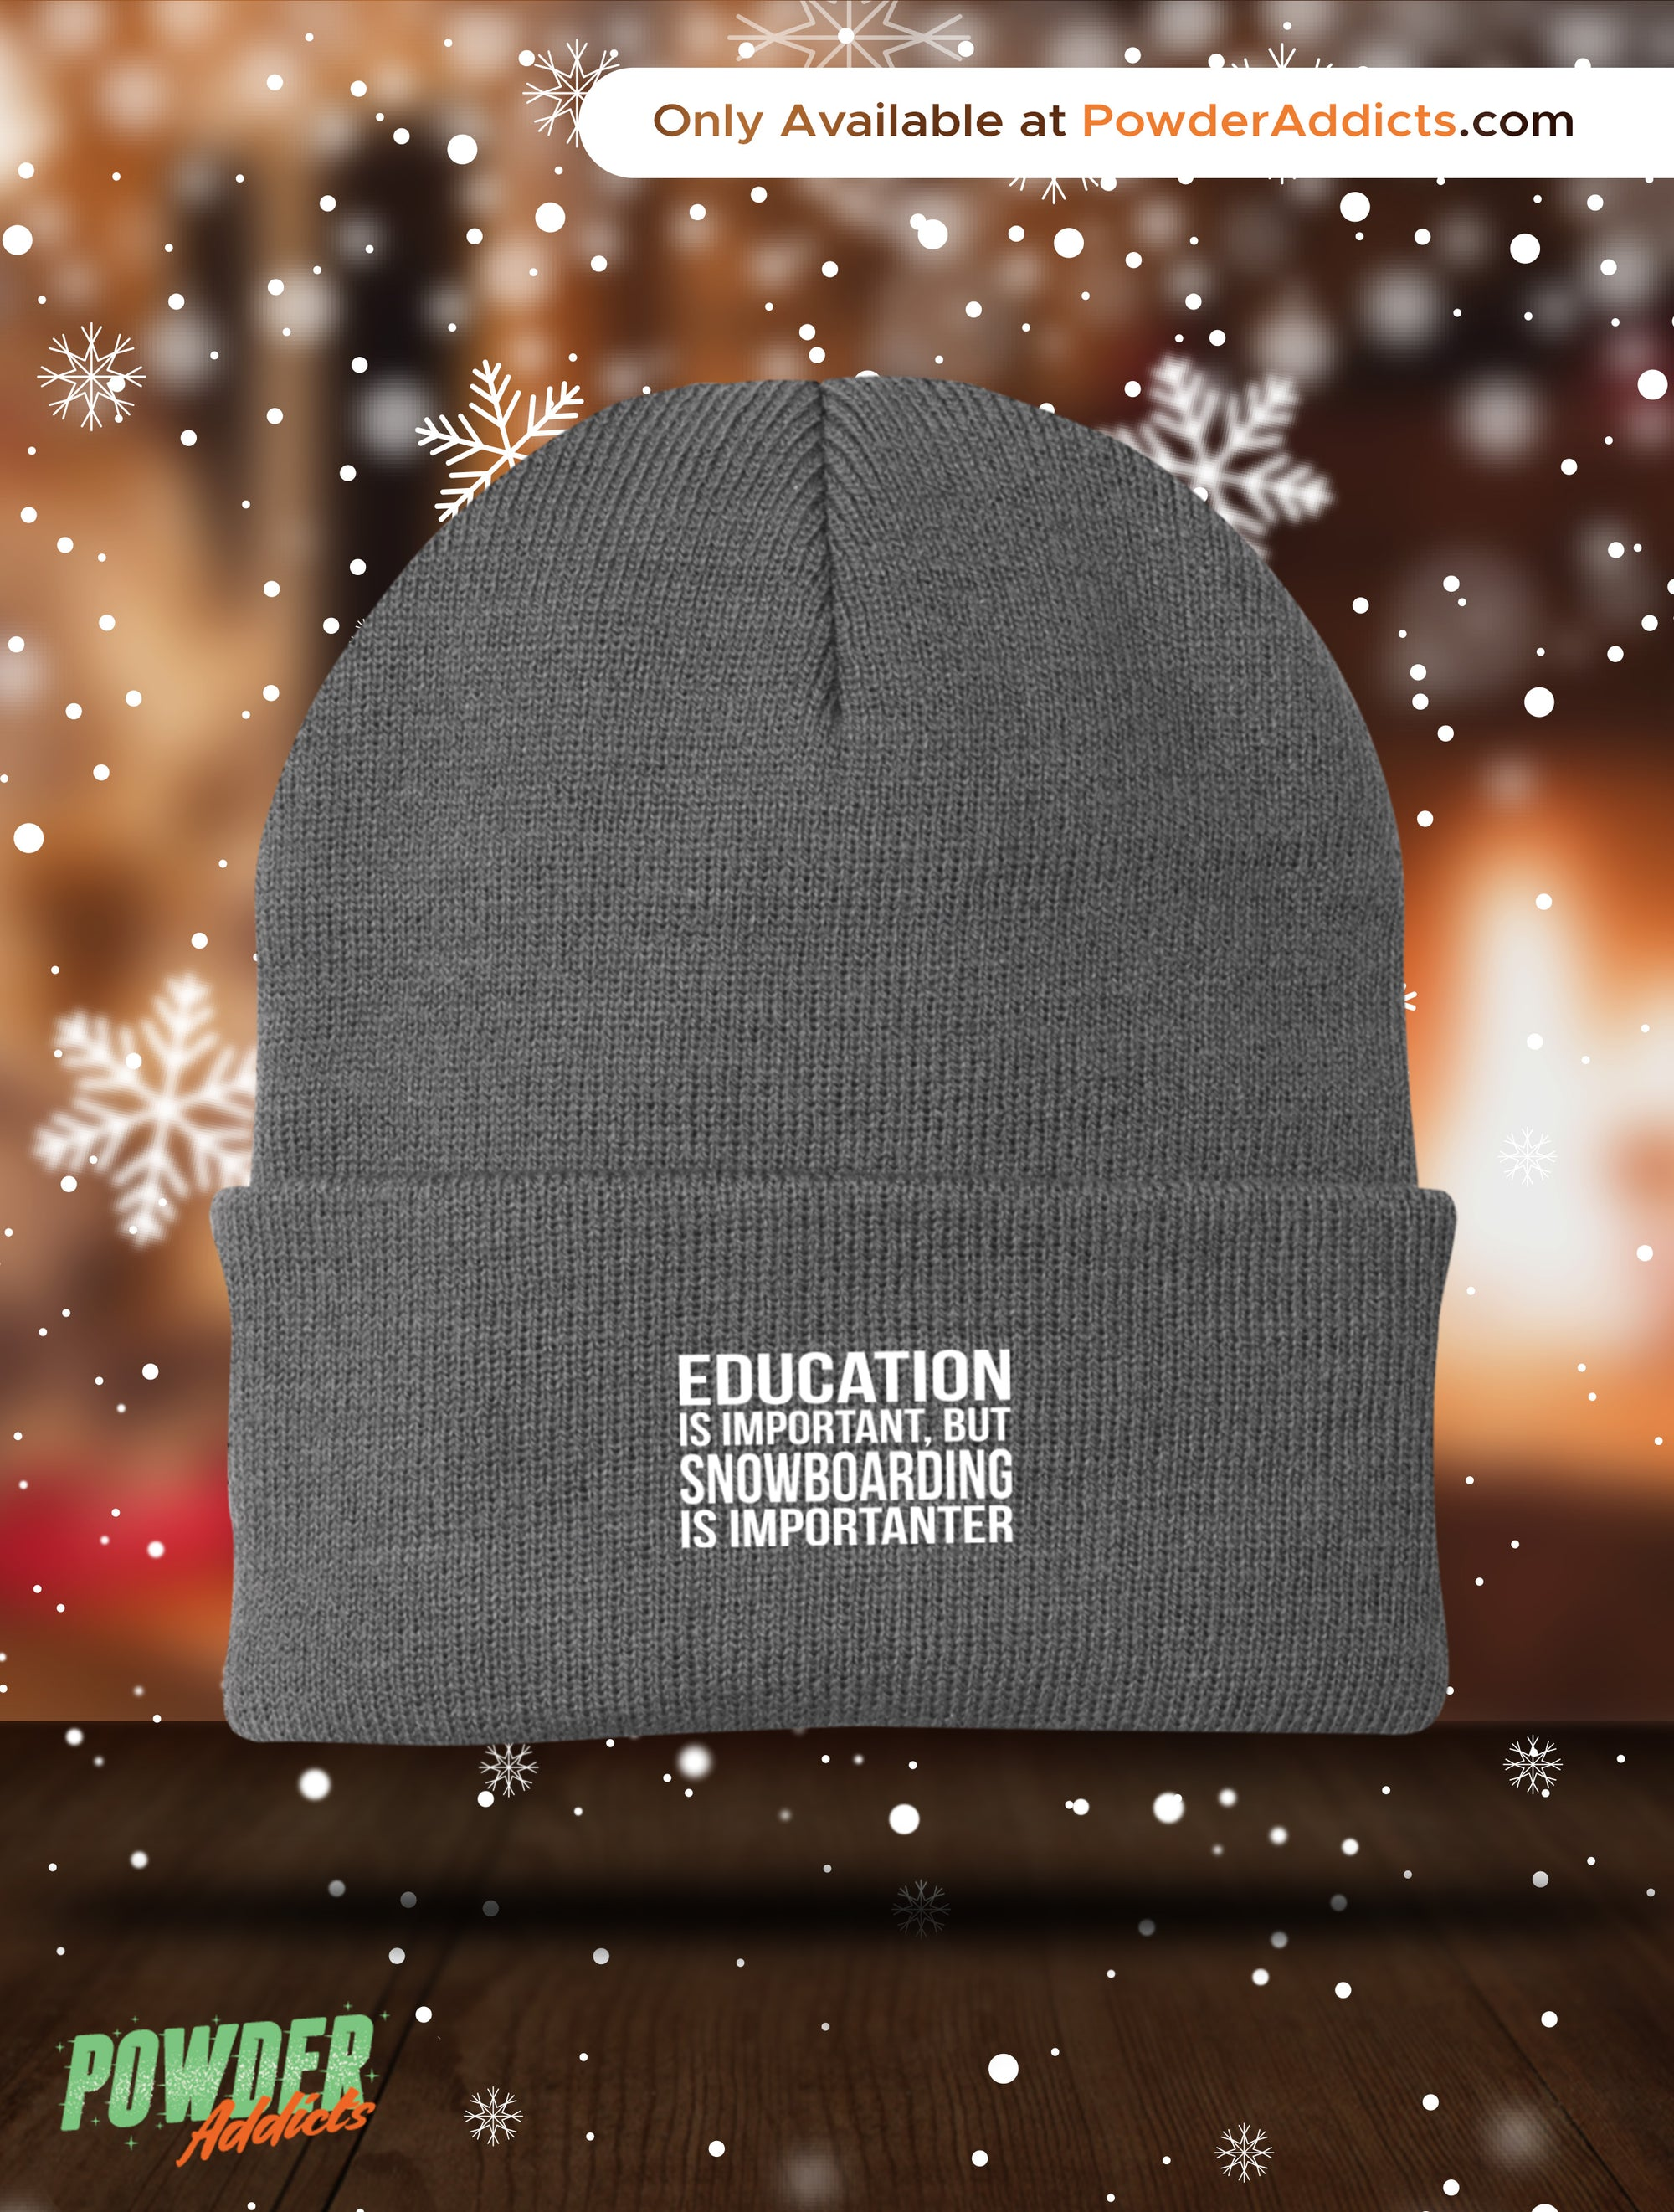 Education is Important but Snowboarding is Importanter Knit Cap - Powderaddicts